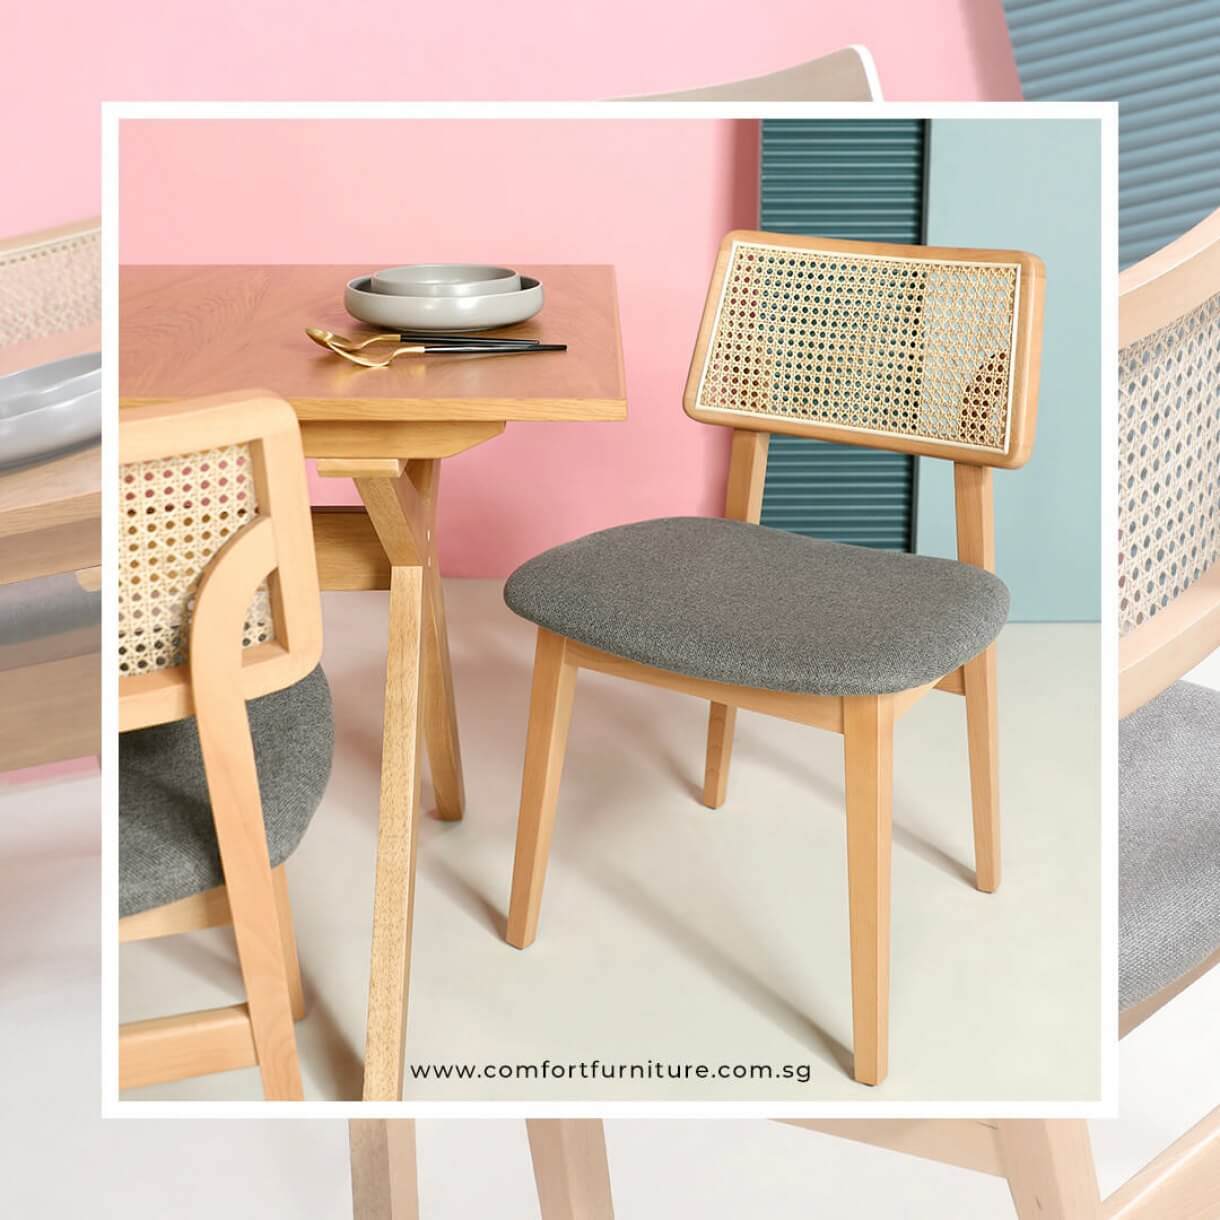 Jago Rattan Dining Chair with Fabric Seats - Comfort Furniture